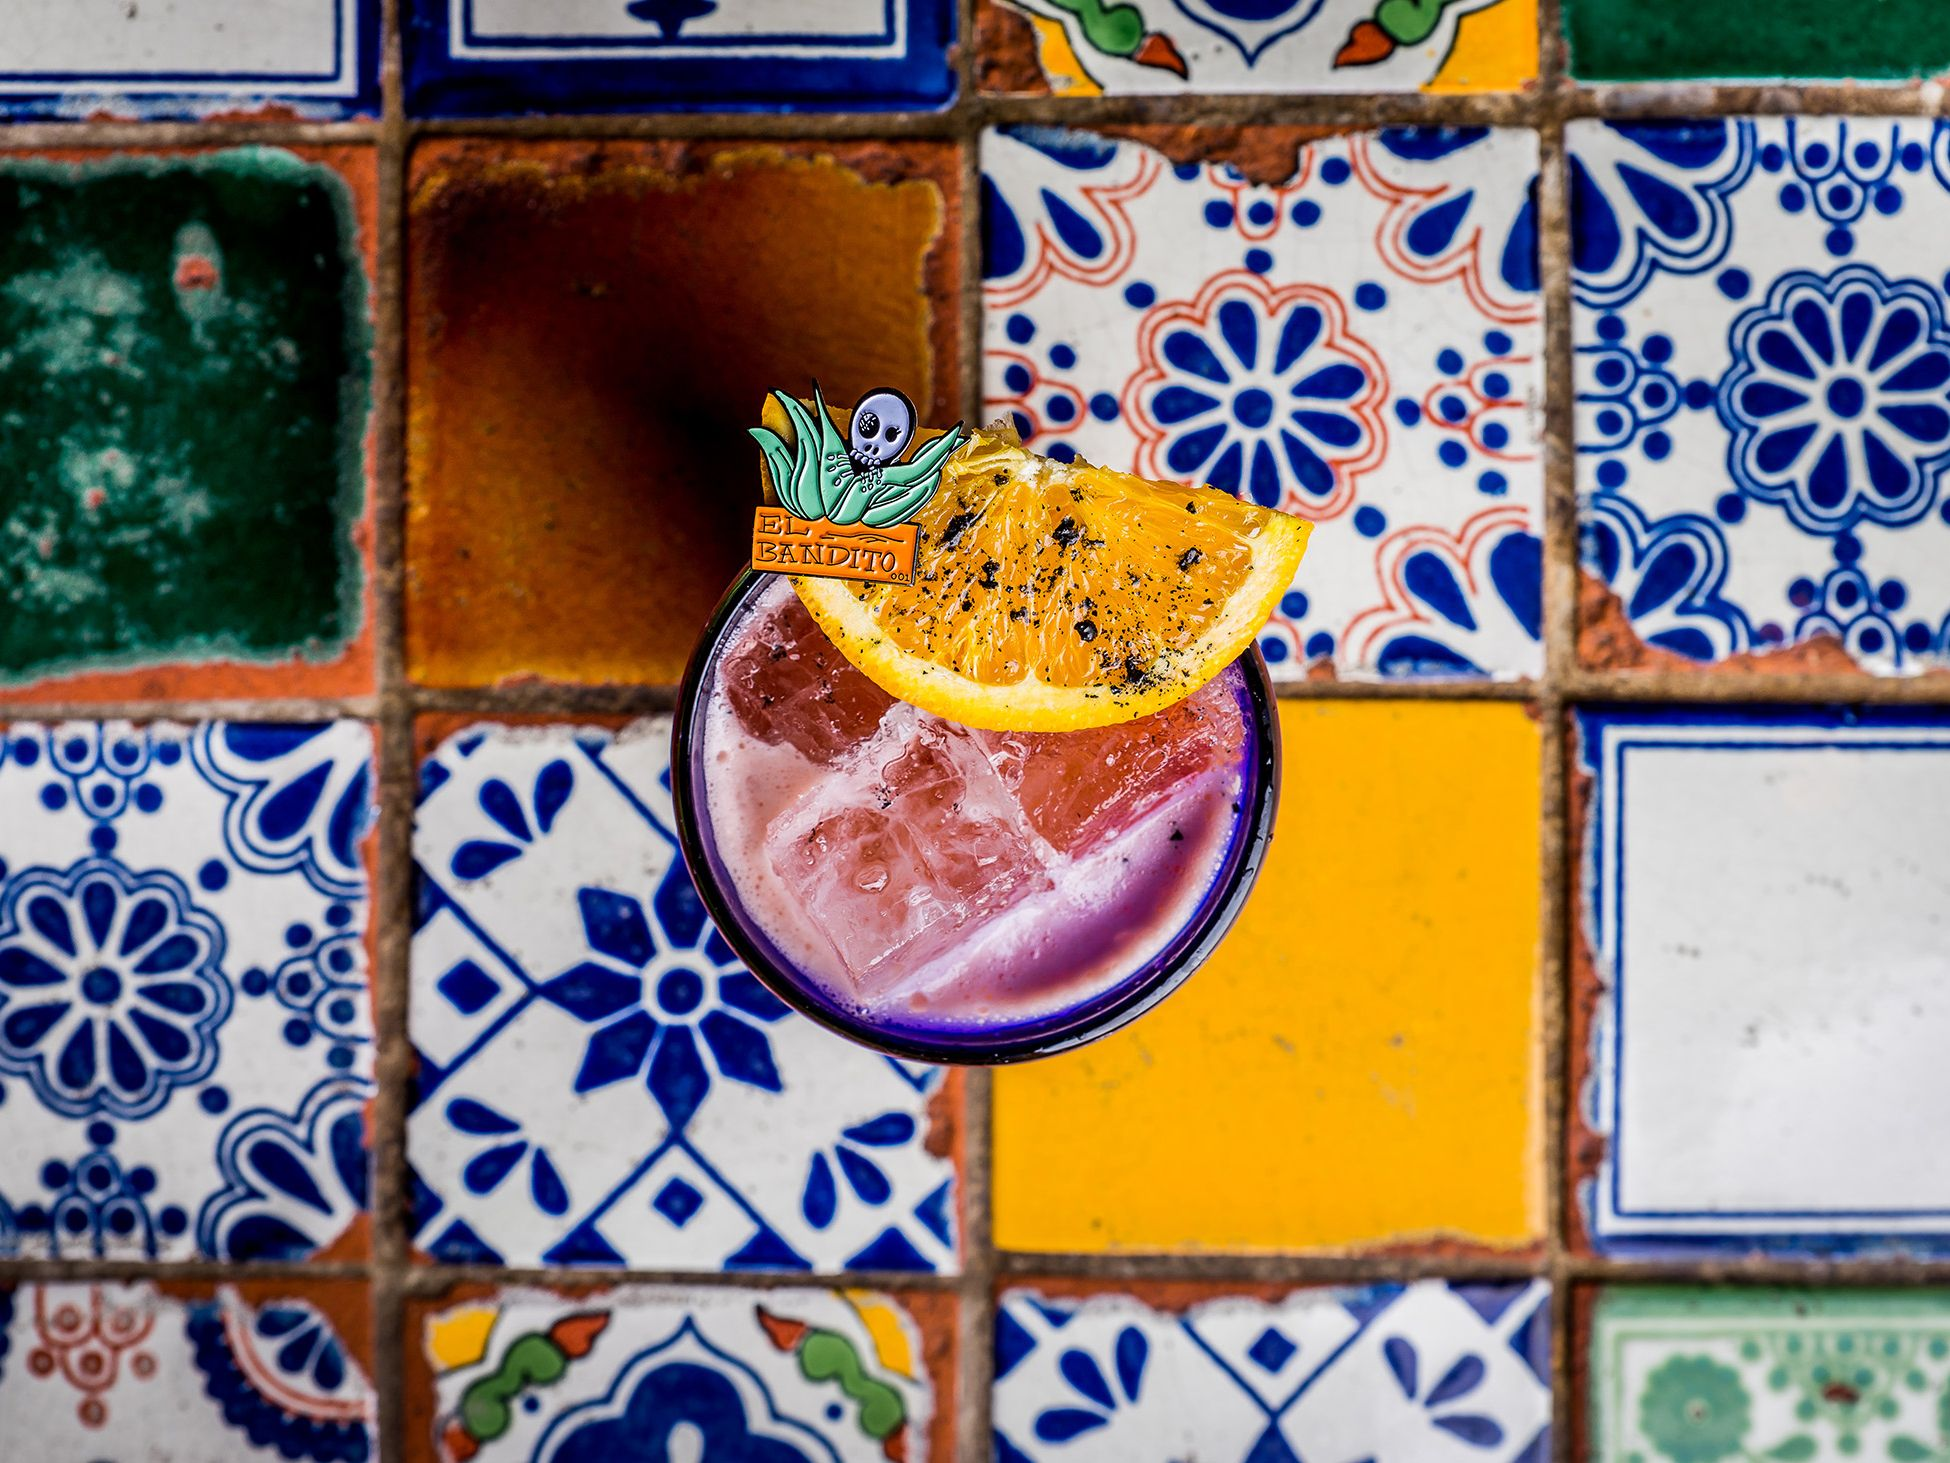 Mezcal, El Bandito, Trailer Happiness,London bars